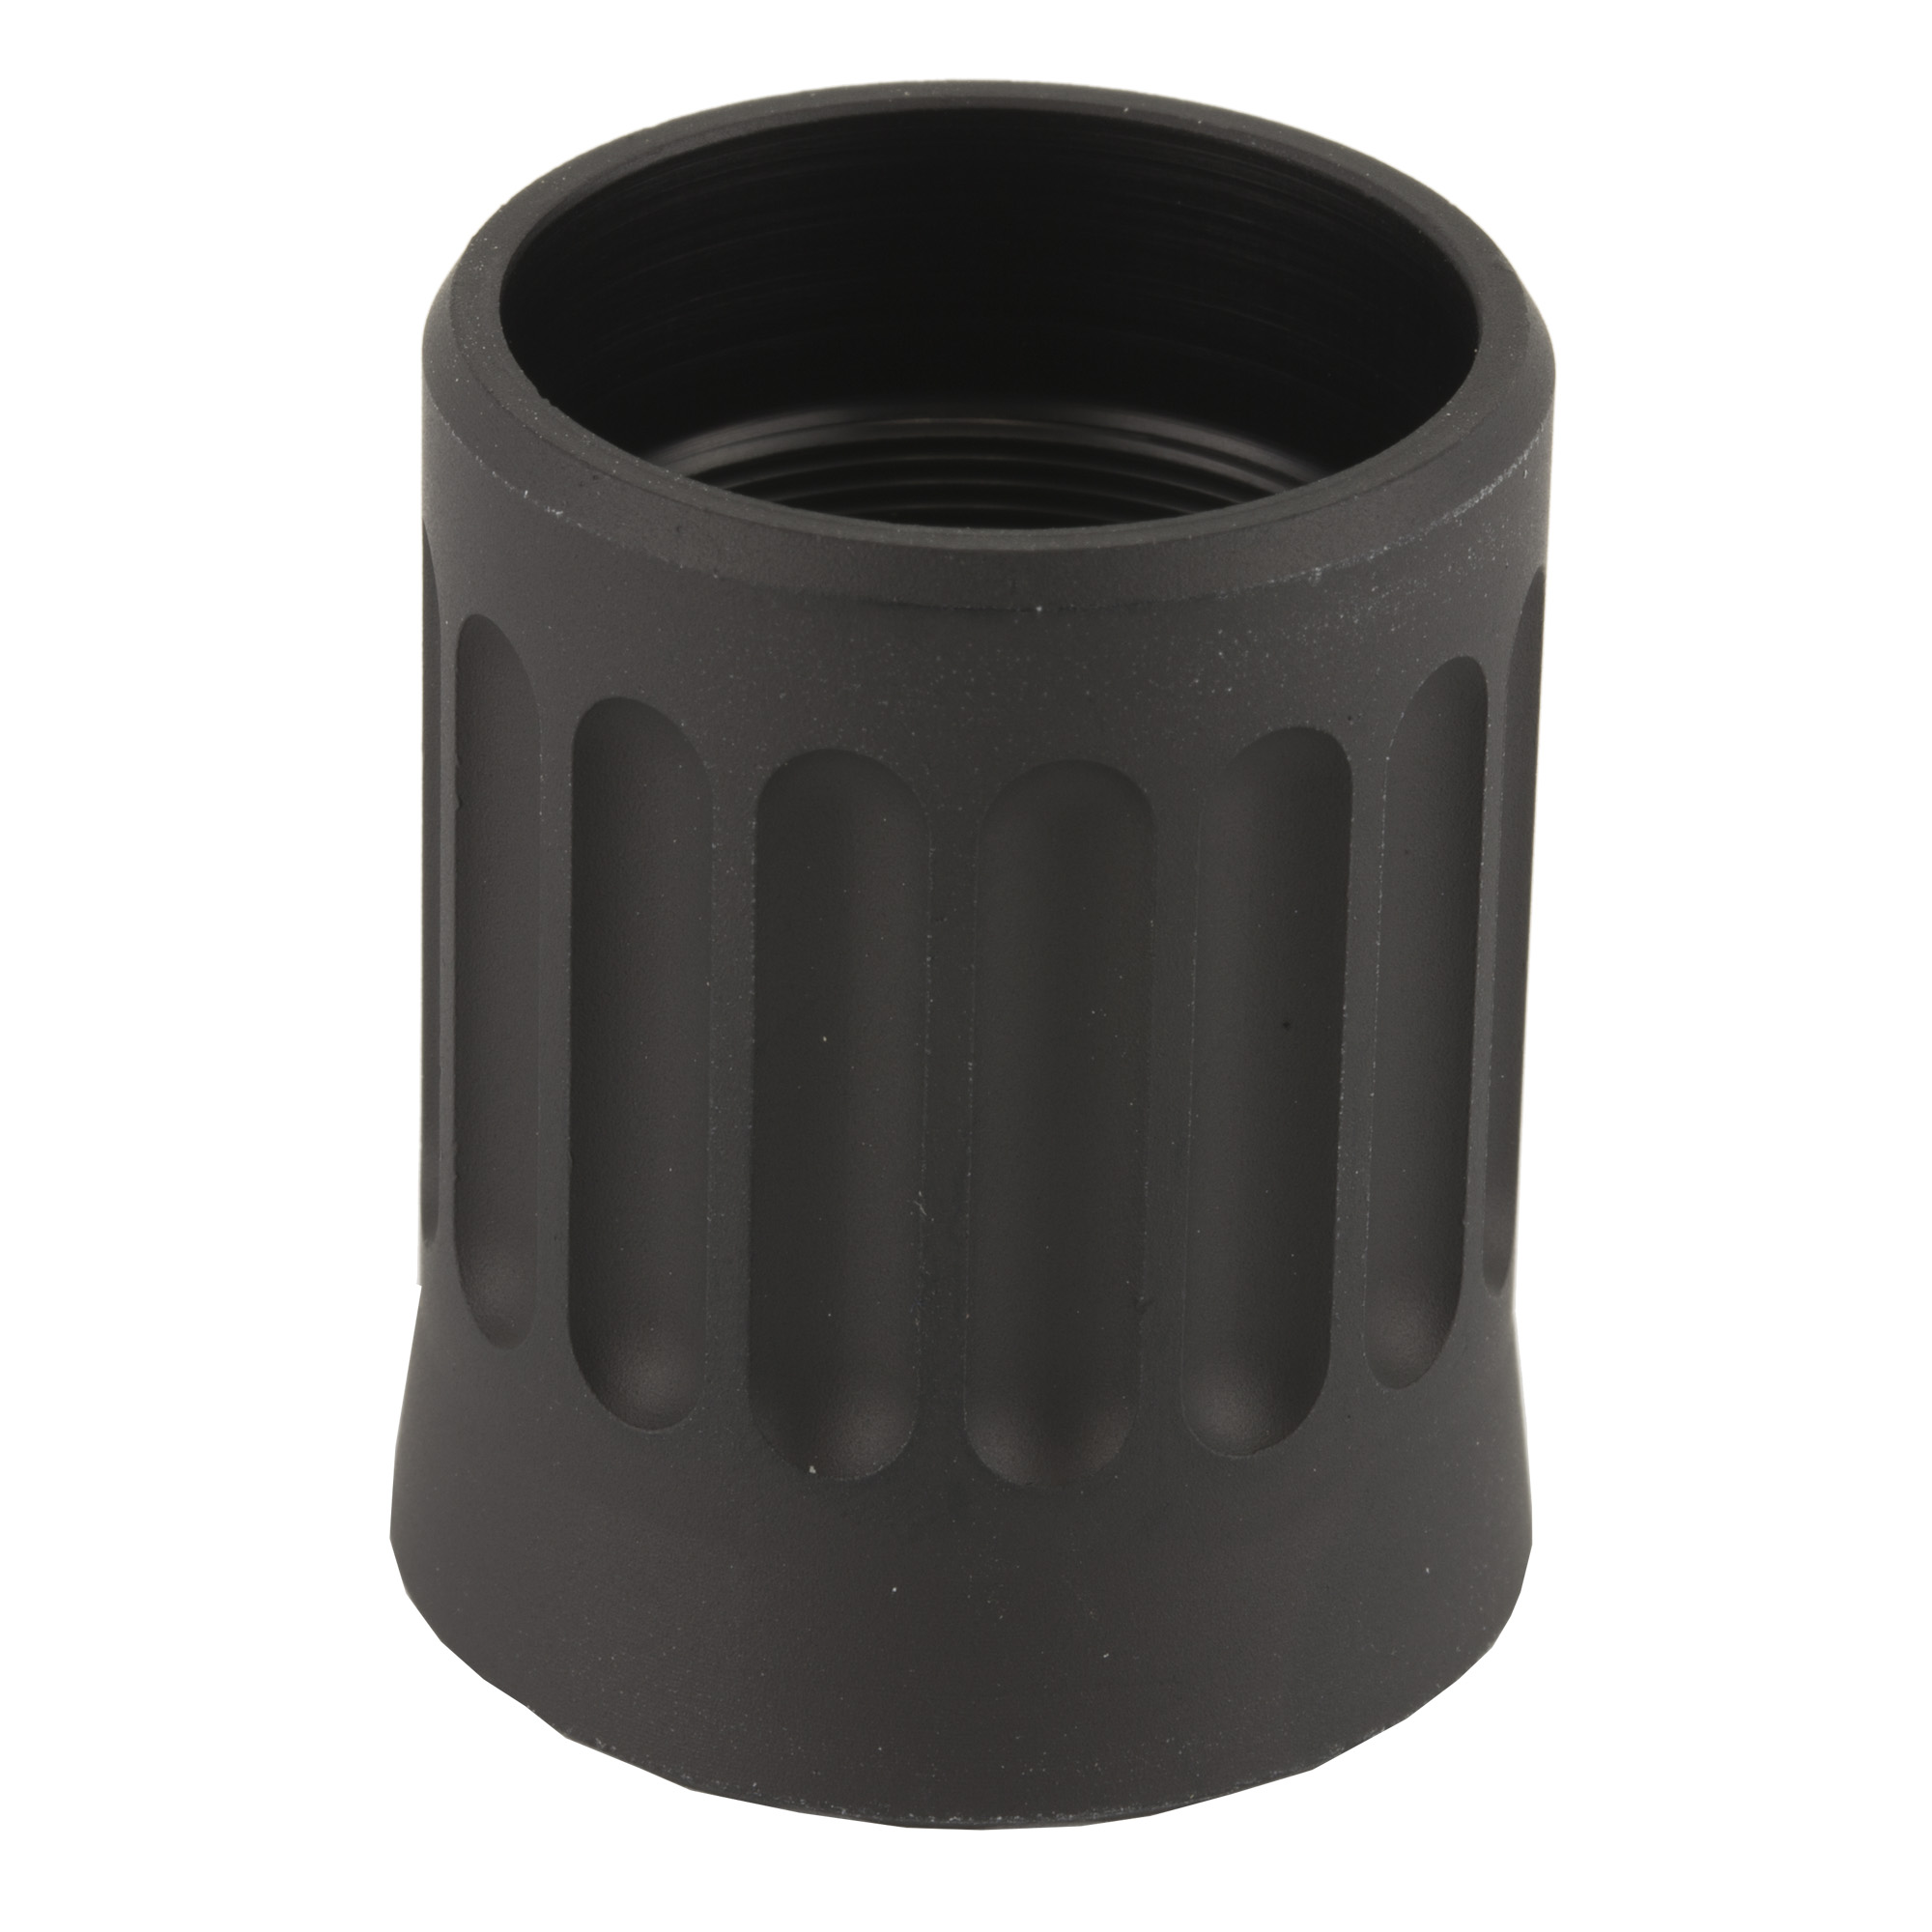 """The MXT extension nut allows for installation of a Nordic Components MXT 12ga shotgun extension tube kit. The nut replaces the factory magazine cap"""" and is required for installation of the extension tube kit."""